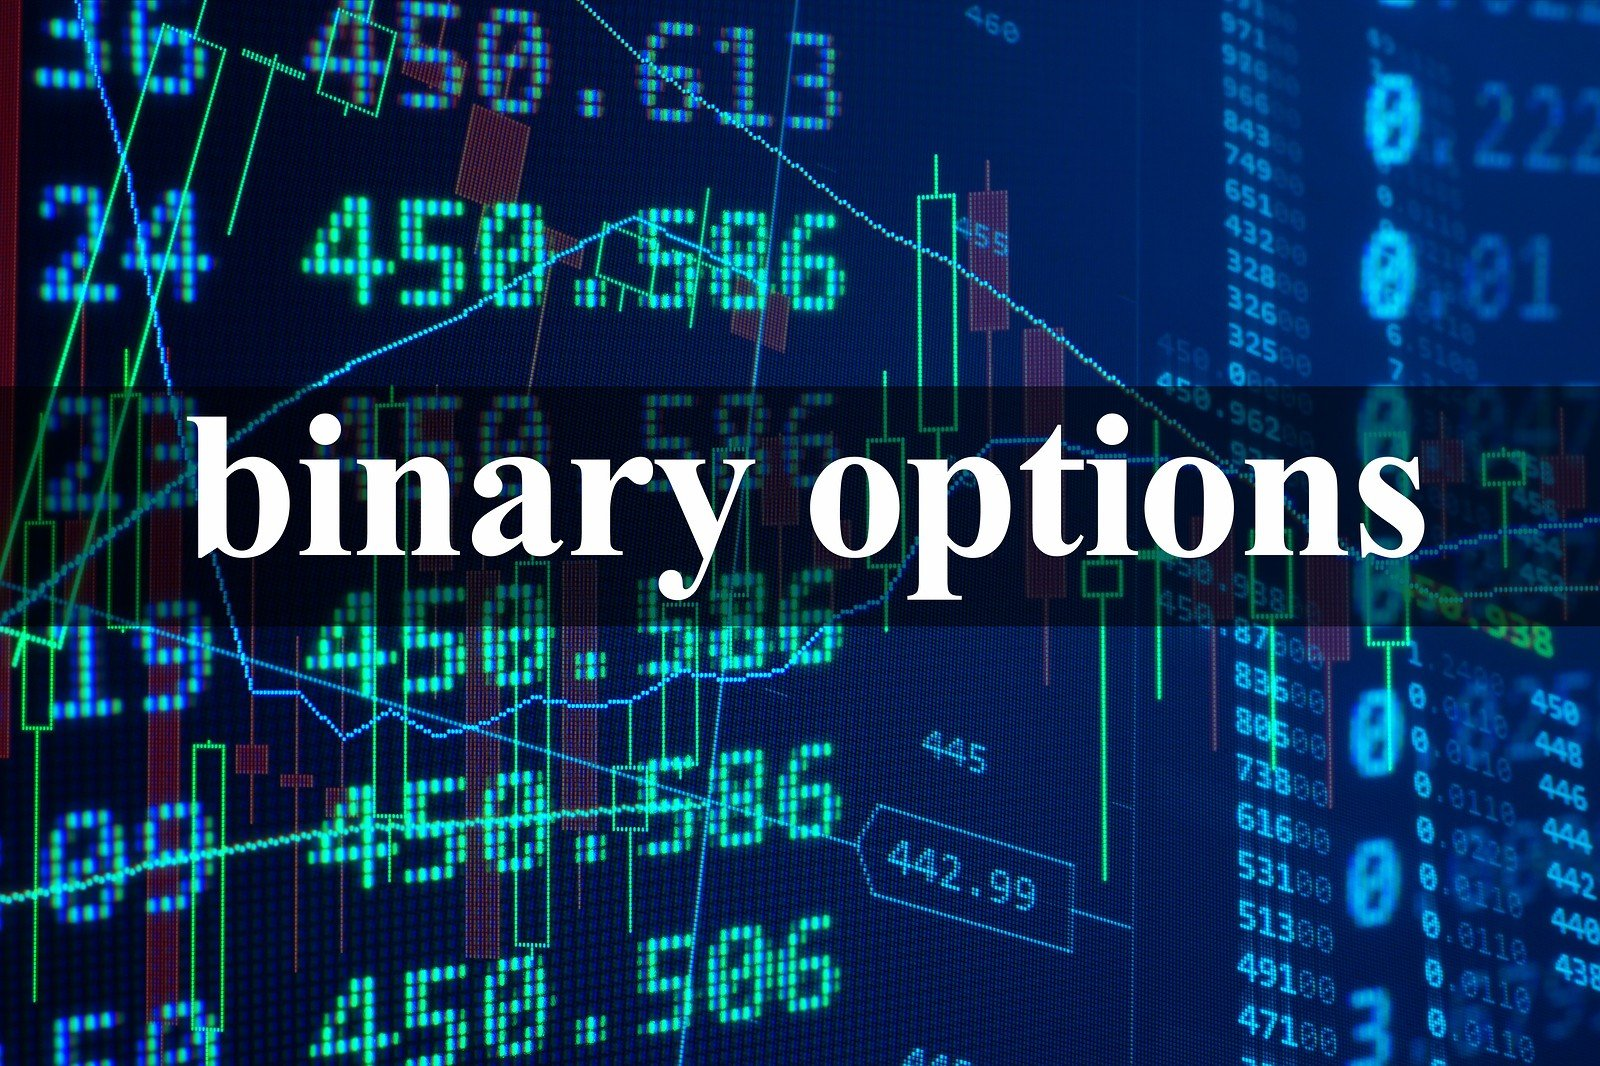 Binary options regulated in uk